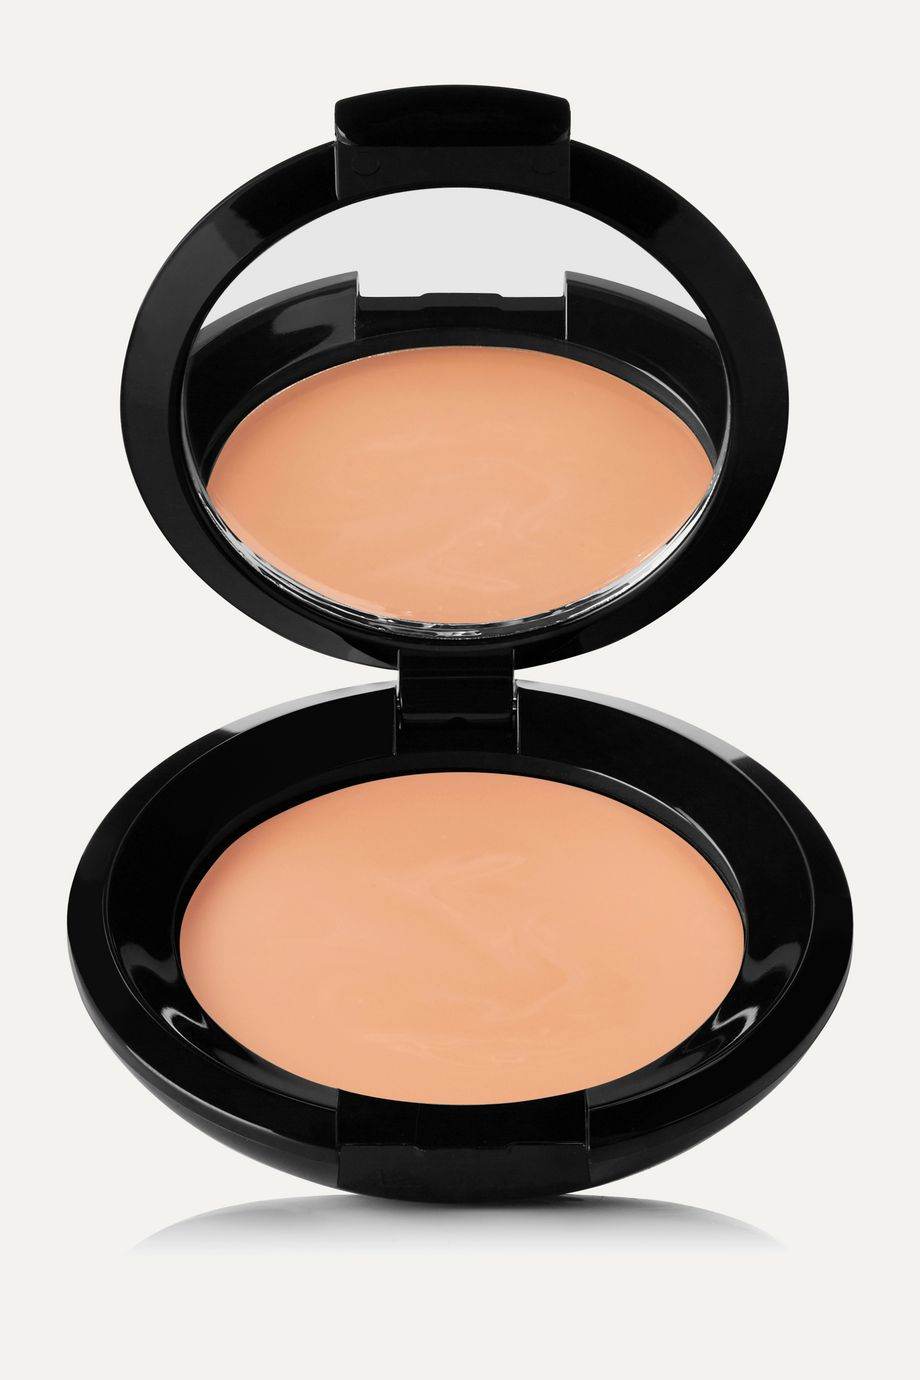 Rituel de Fille The Ethereal Veil Conceal and Cover - Io